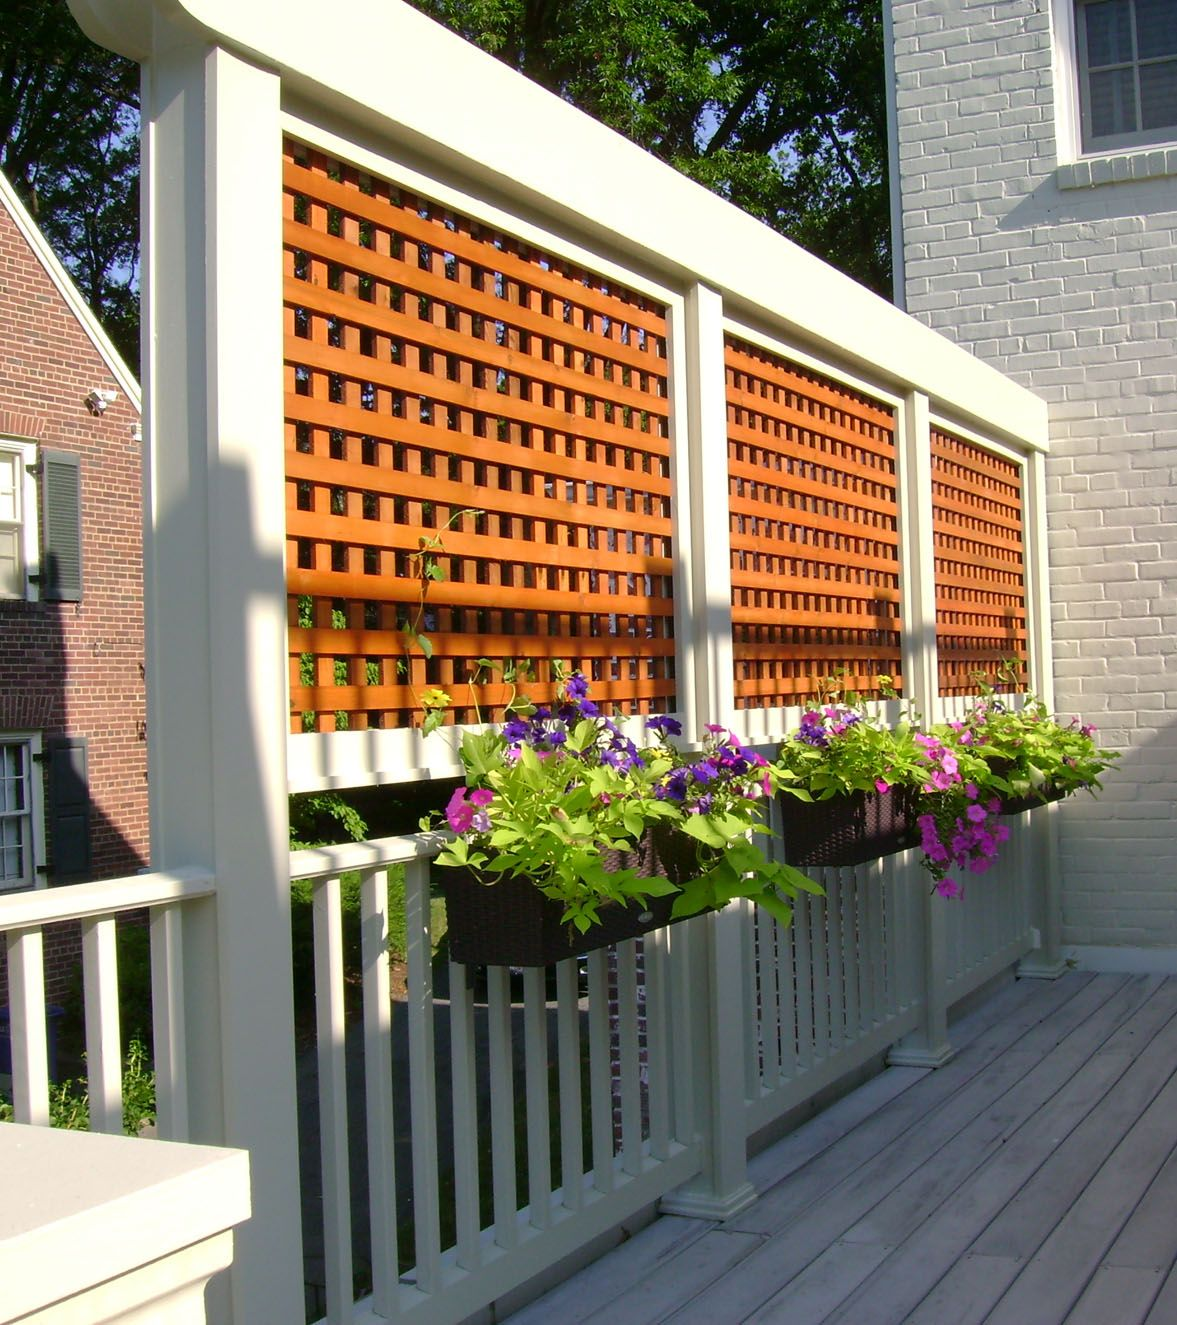 A little privacy makes for good neighbors petro design for Backyard patio privacy ideas